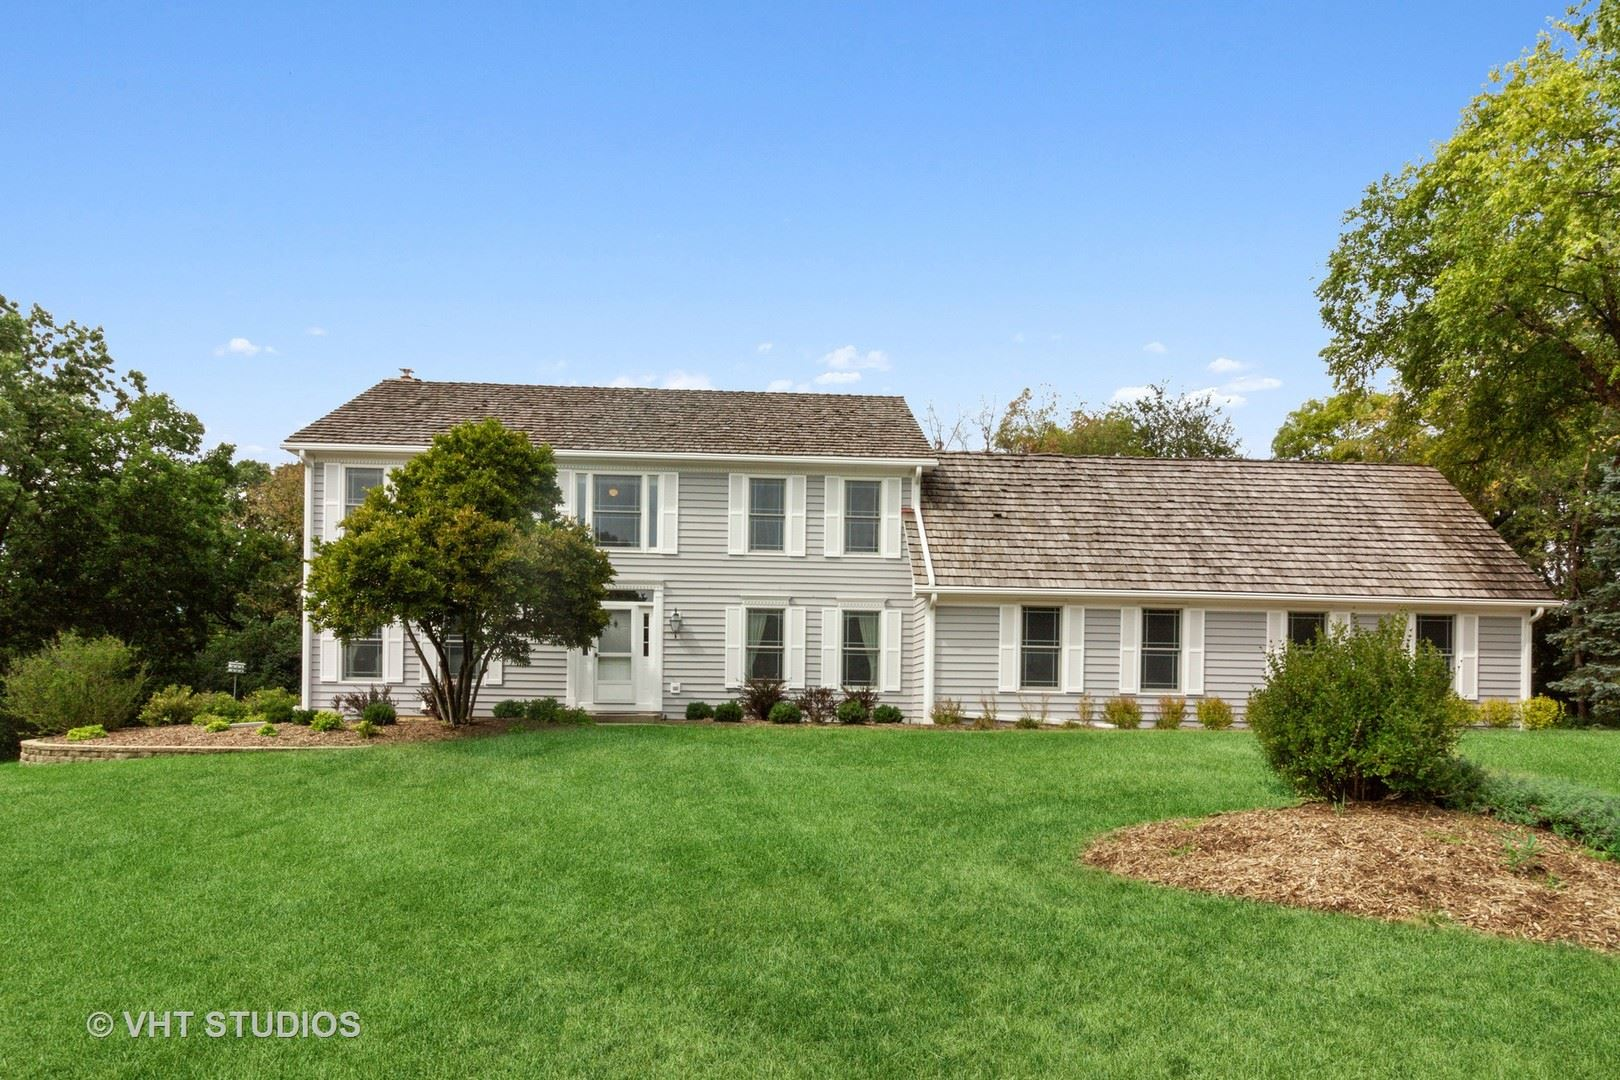 26762 W rose terrace Court, Tower Lakes, IL 60010 - #: 11243452